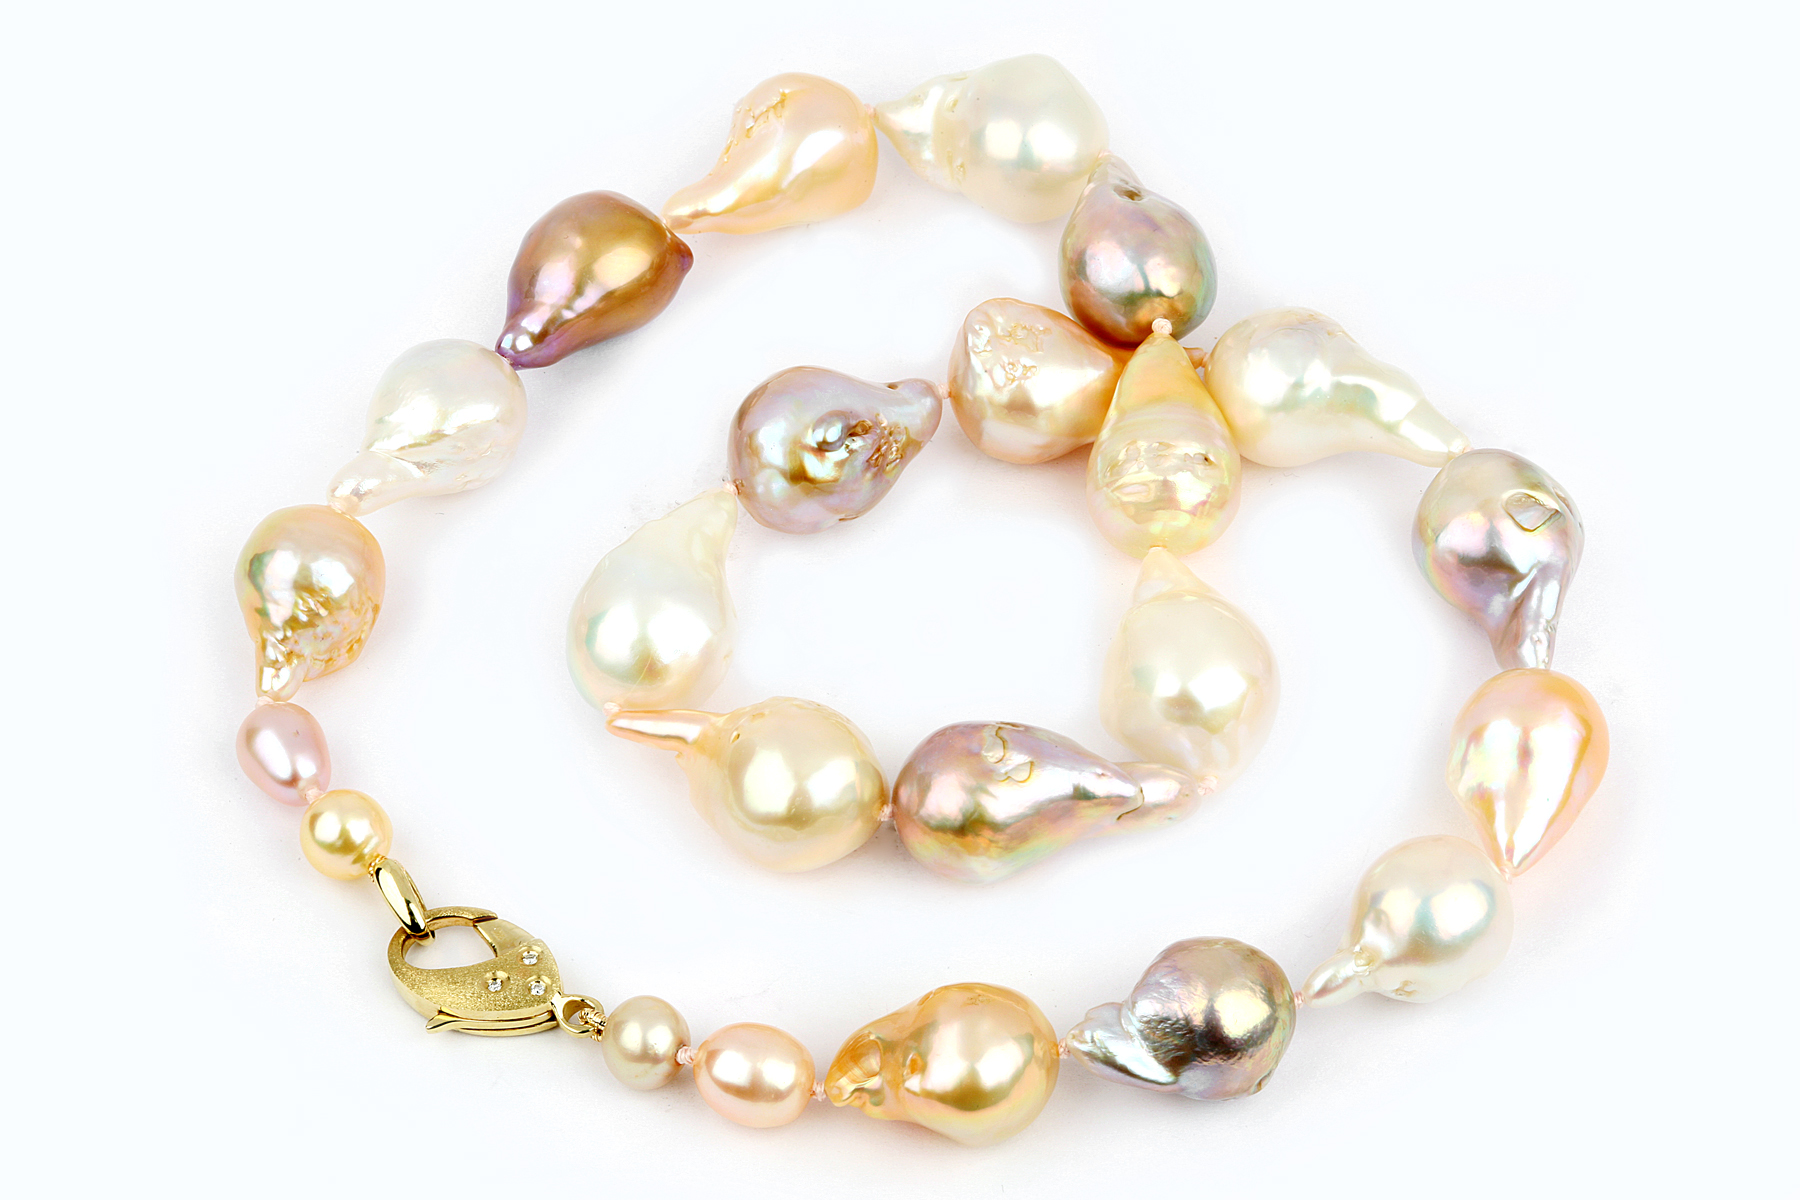 Pearls Your Jewelry Divas And How To Store Them